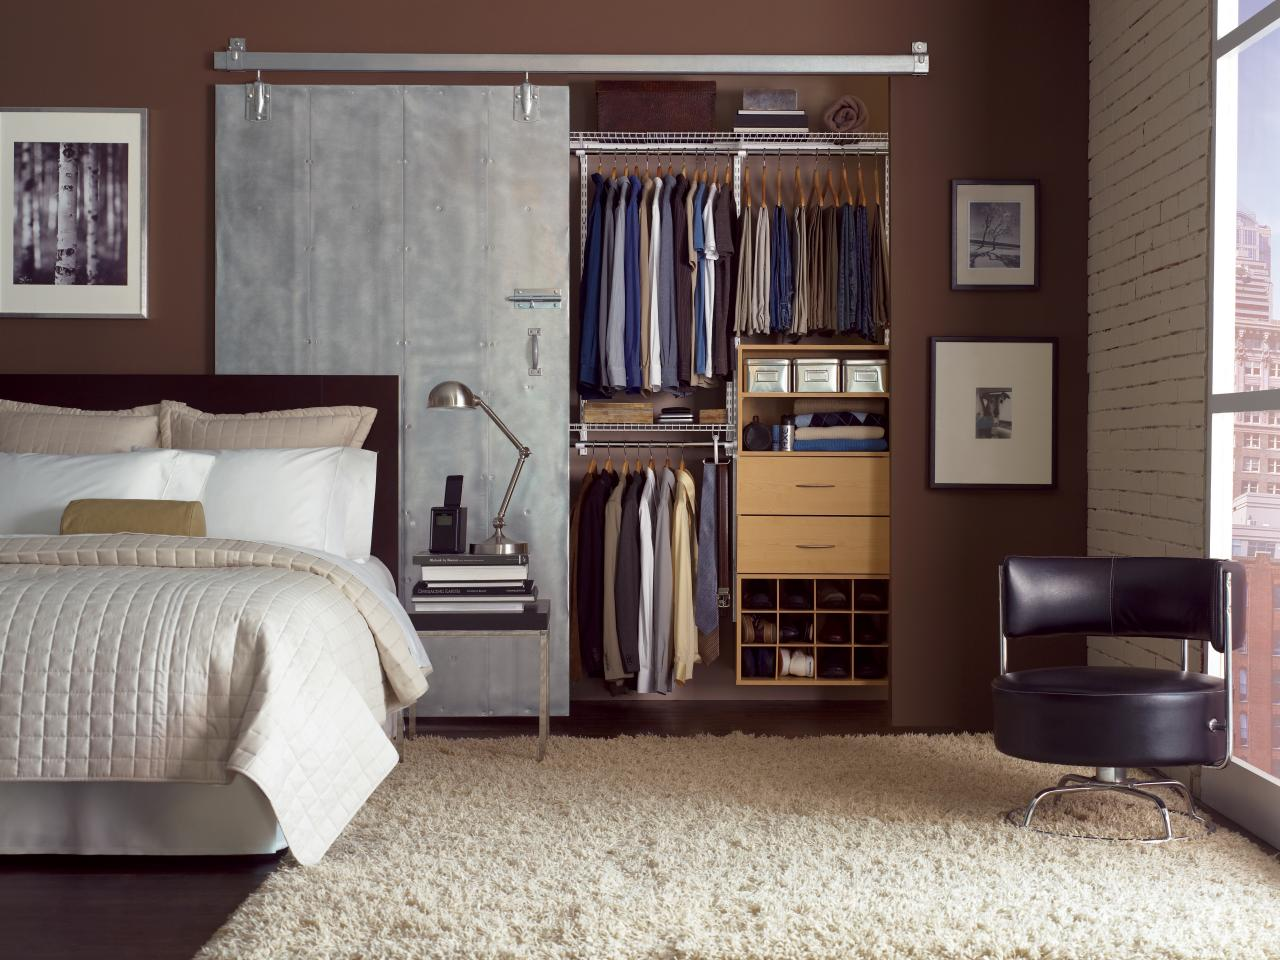 bedroom-laundry-room-furniture-wooden-walk-in-wardrobes-closet-piero-lissoni-with-excellent-luxury-in-modern-house-design-walk-in-closet-with-traditional-and-modern-interior-design-for-small-house.jpg